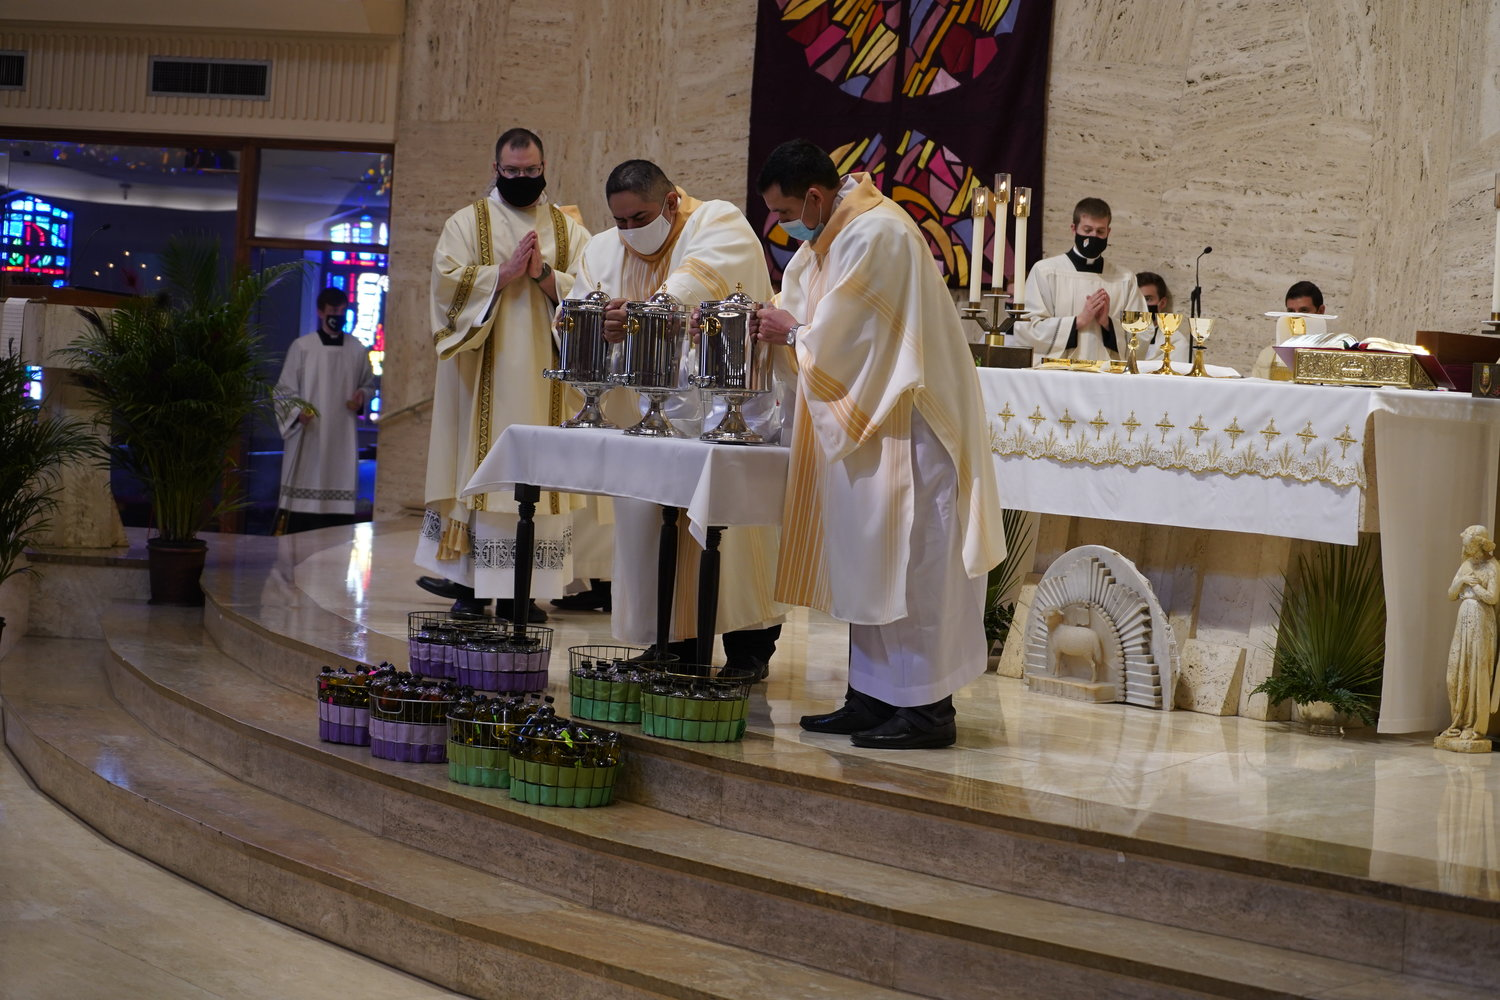 Rev. Mr. Derek Hooper observes Deacon Louis Reyes and Deacon Santos Rubio presenting the Oil of Catechumens and the Oil of the Sick during the Chrism Mass March 30 in the Cathedral of St. Joseph.